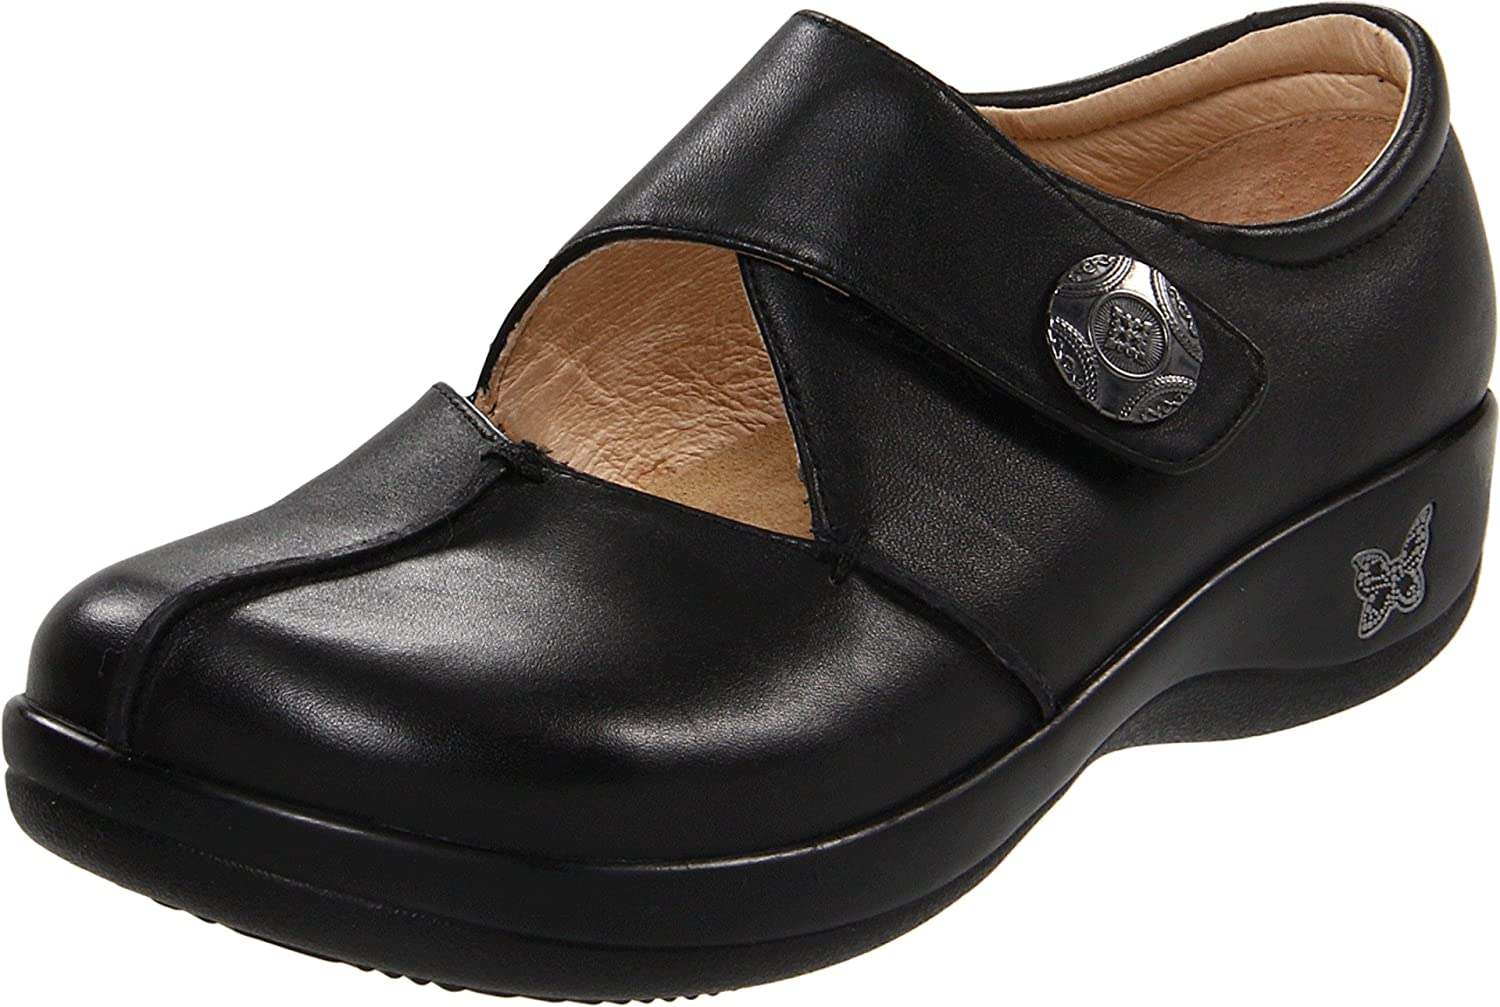 f873f1afb0a04 Best Shoes for Nurses - 20+ Recommended Nursing Shoes for Women 2019